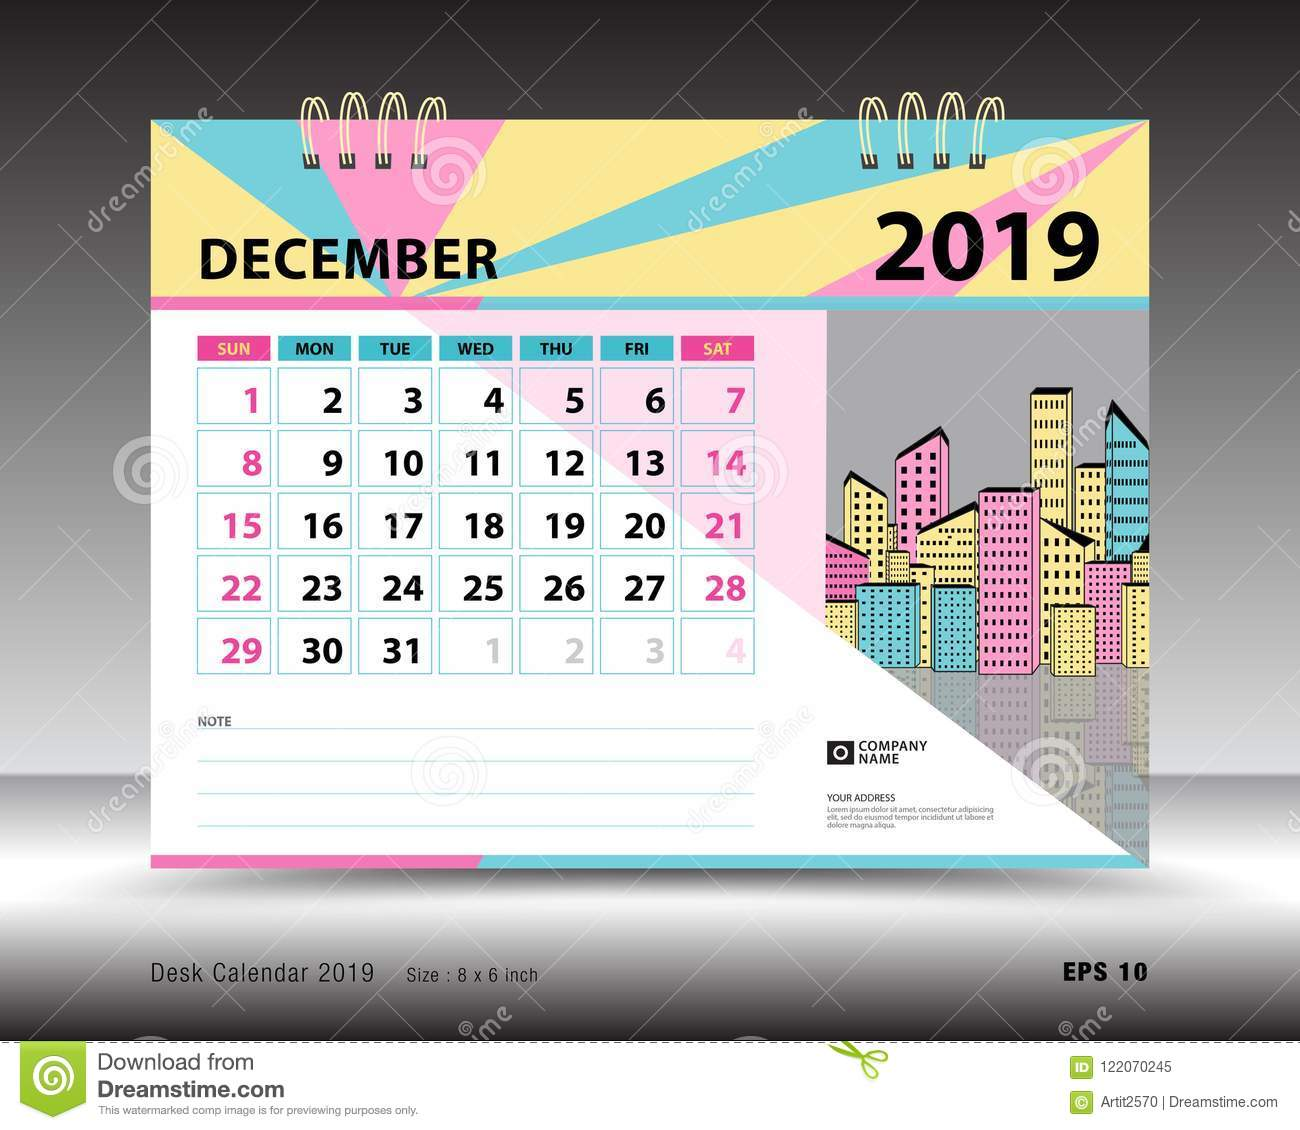 Desk Calendar For December 2019 Template Printable Calendar